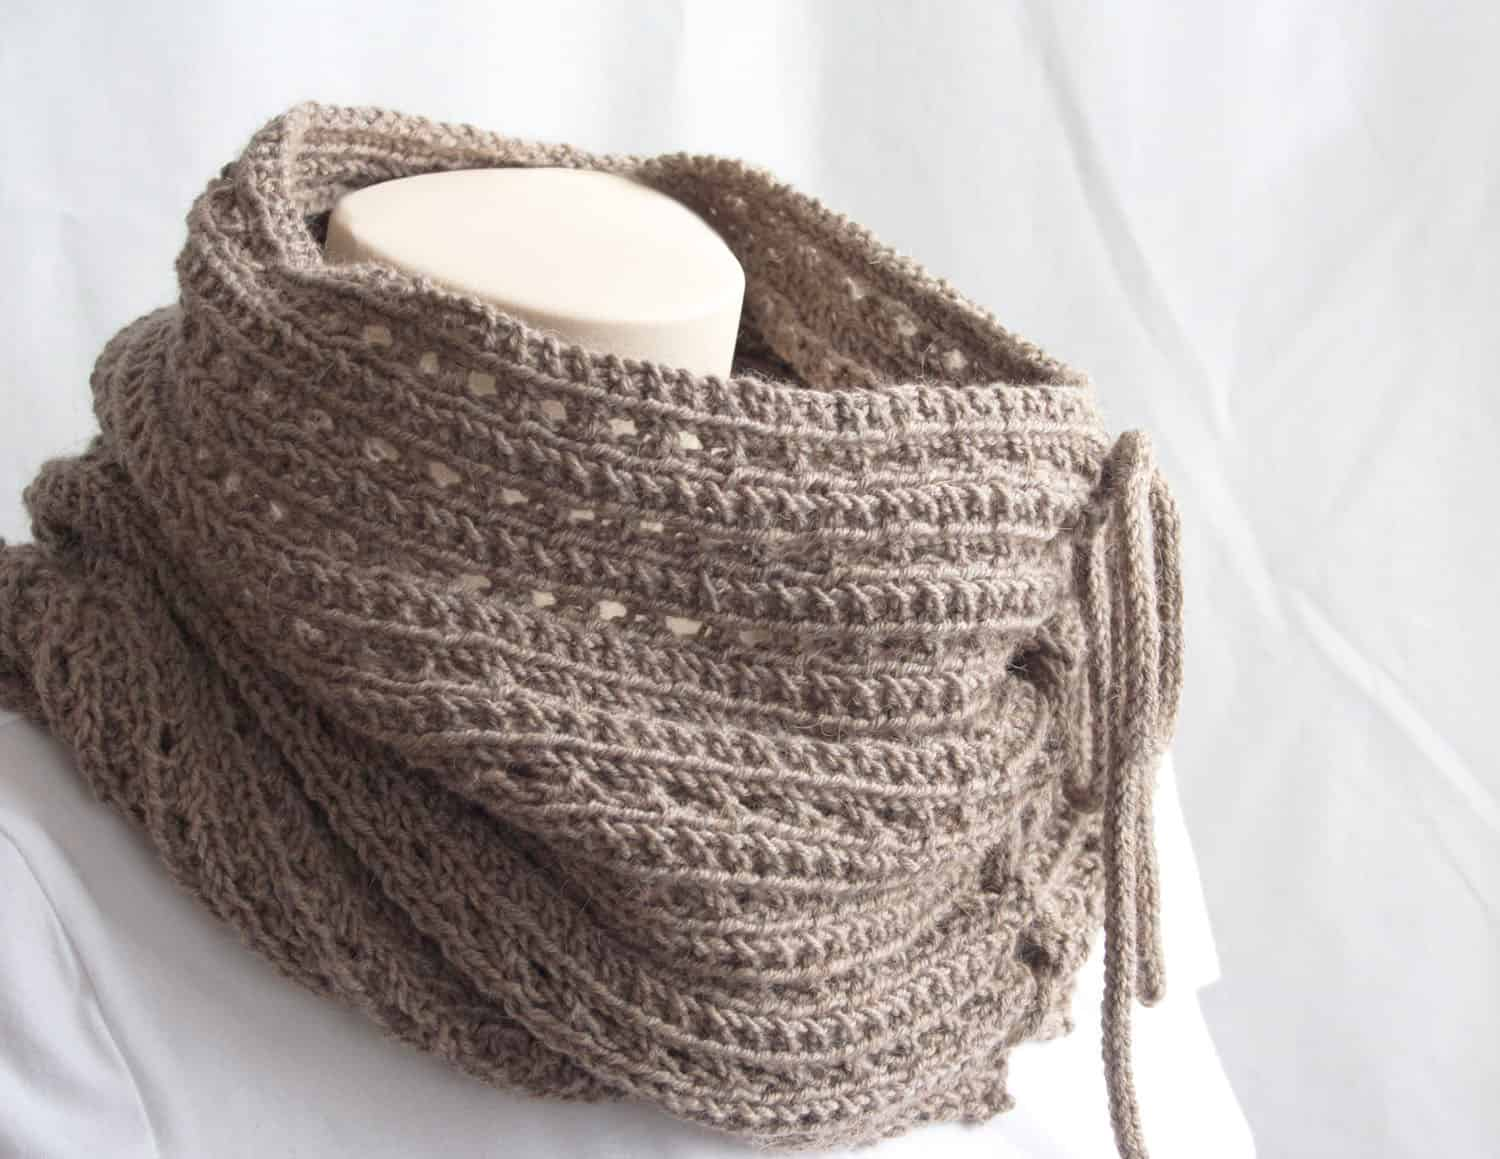 Knitting Pattern : The Mokaccino Cowl